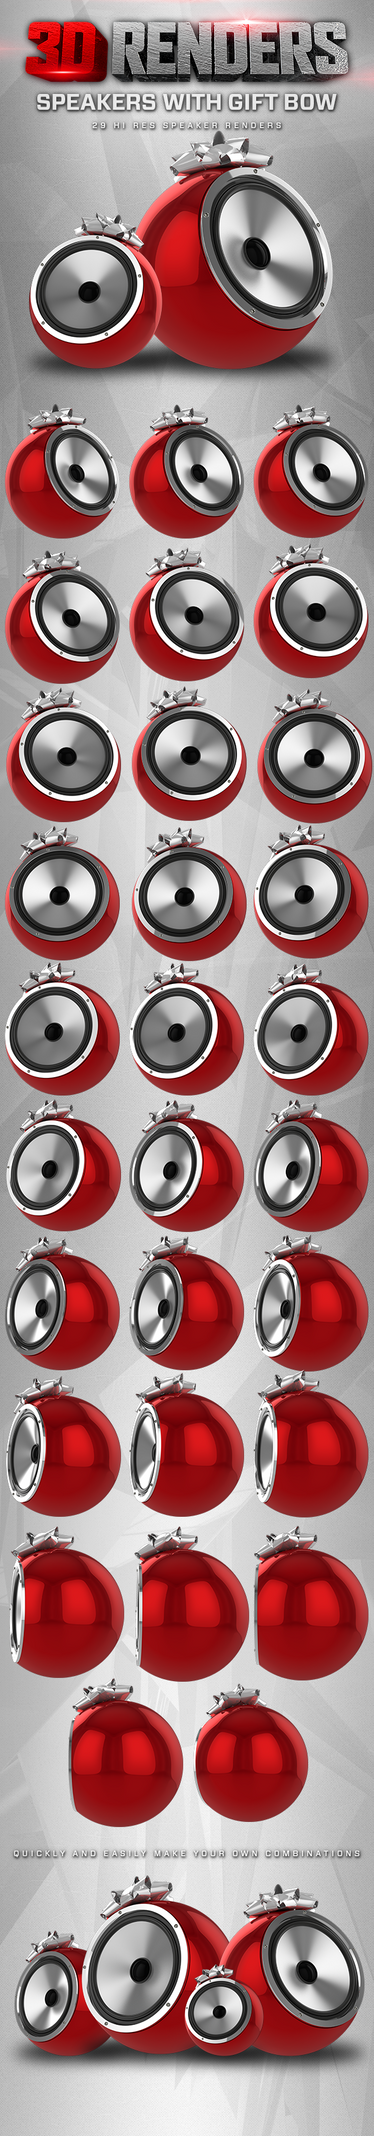 3D Render - Speakers With Gift Bow by DesignFathoms